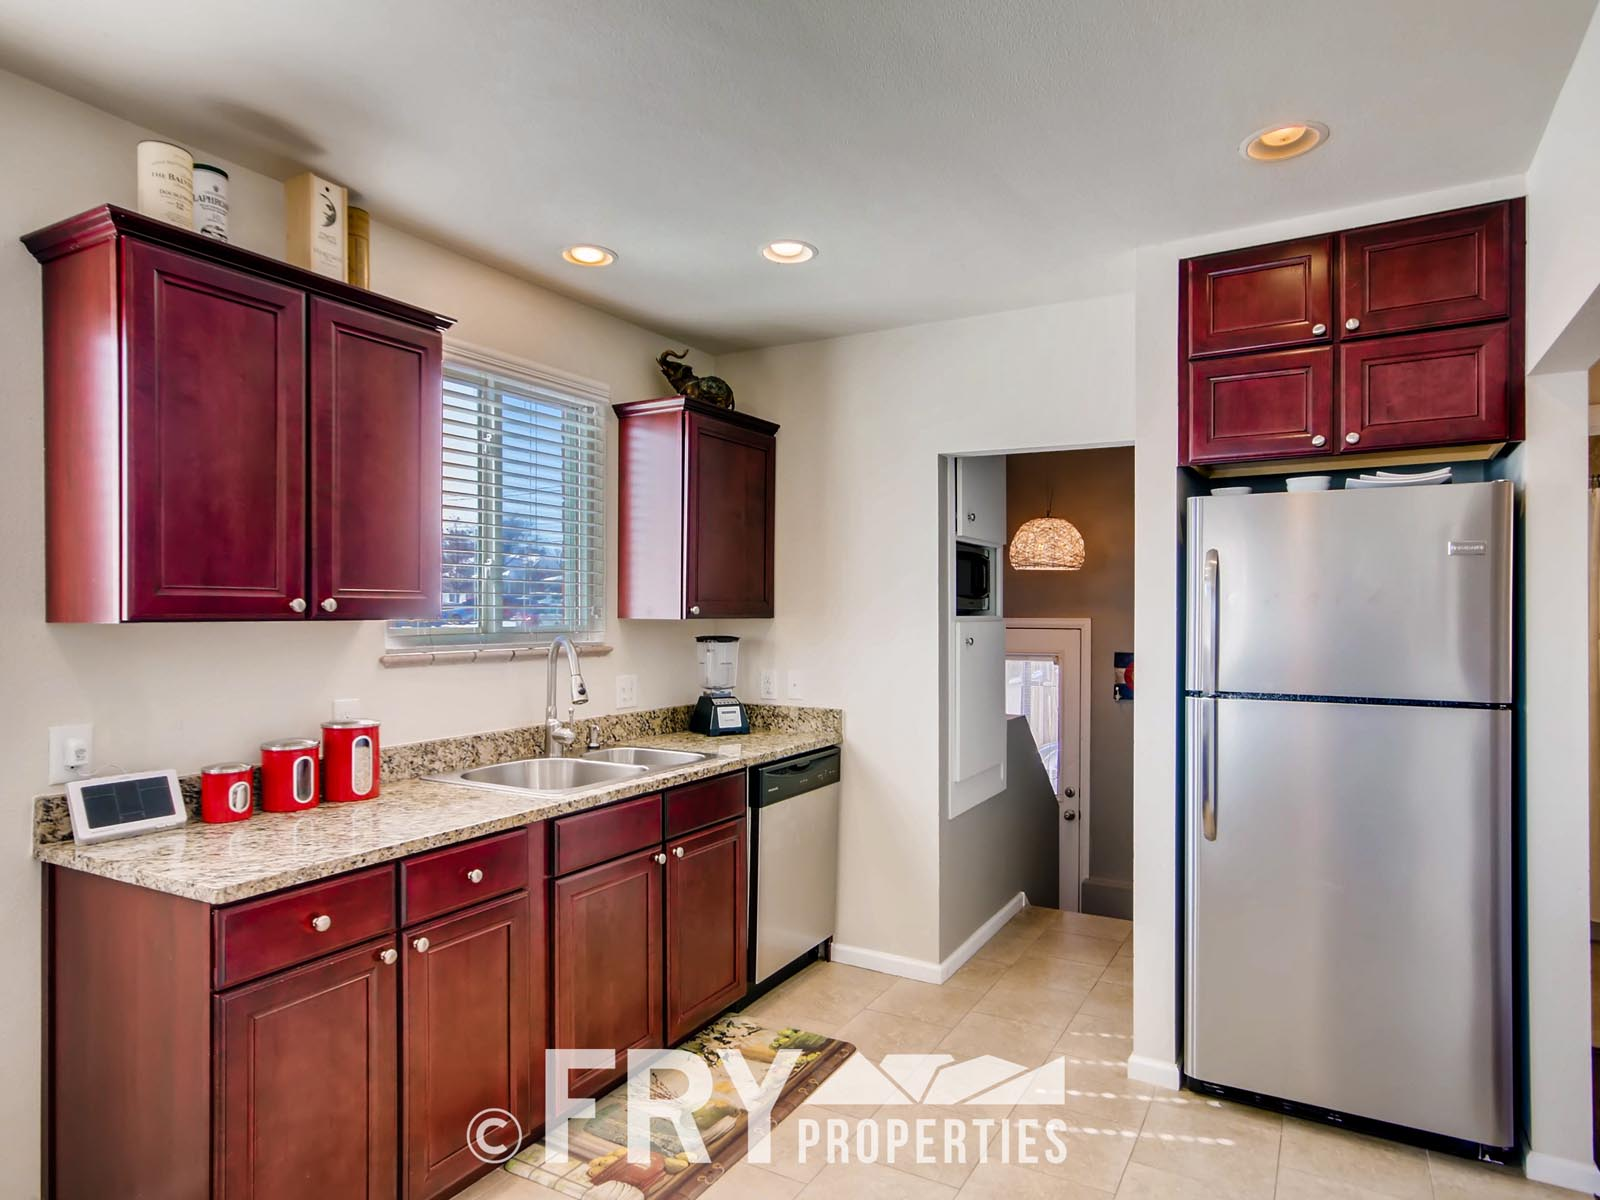 4601 Eliot St Denver CO 80211-print-010-16-Kitchen-3600x2400-300dpi